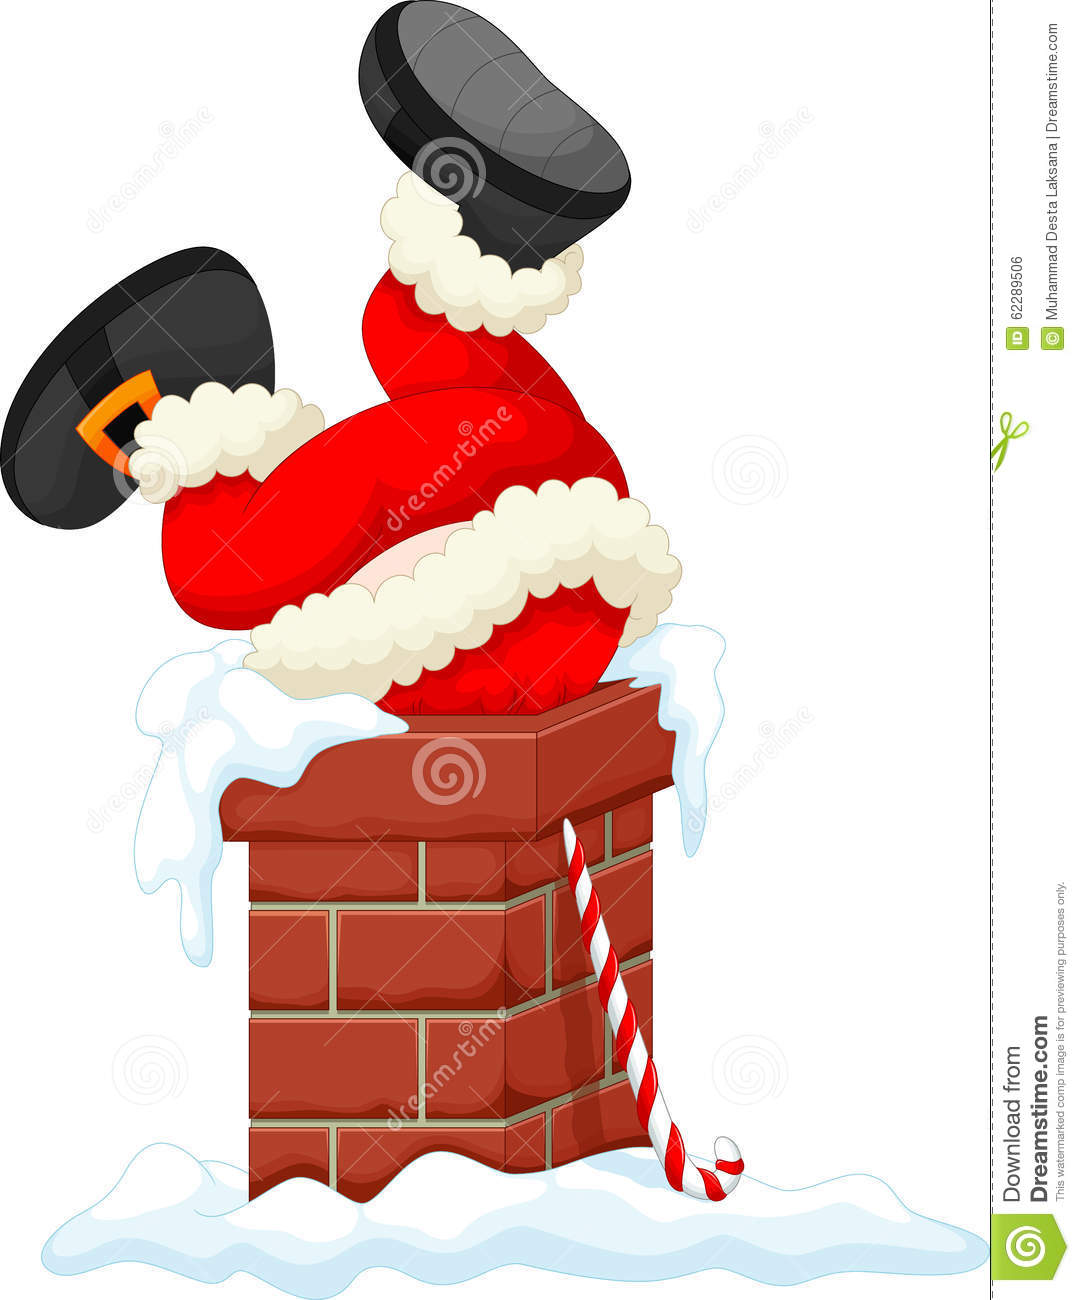 Santa Claus Stuck In The Chimney Stock Illustration.